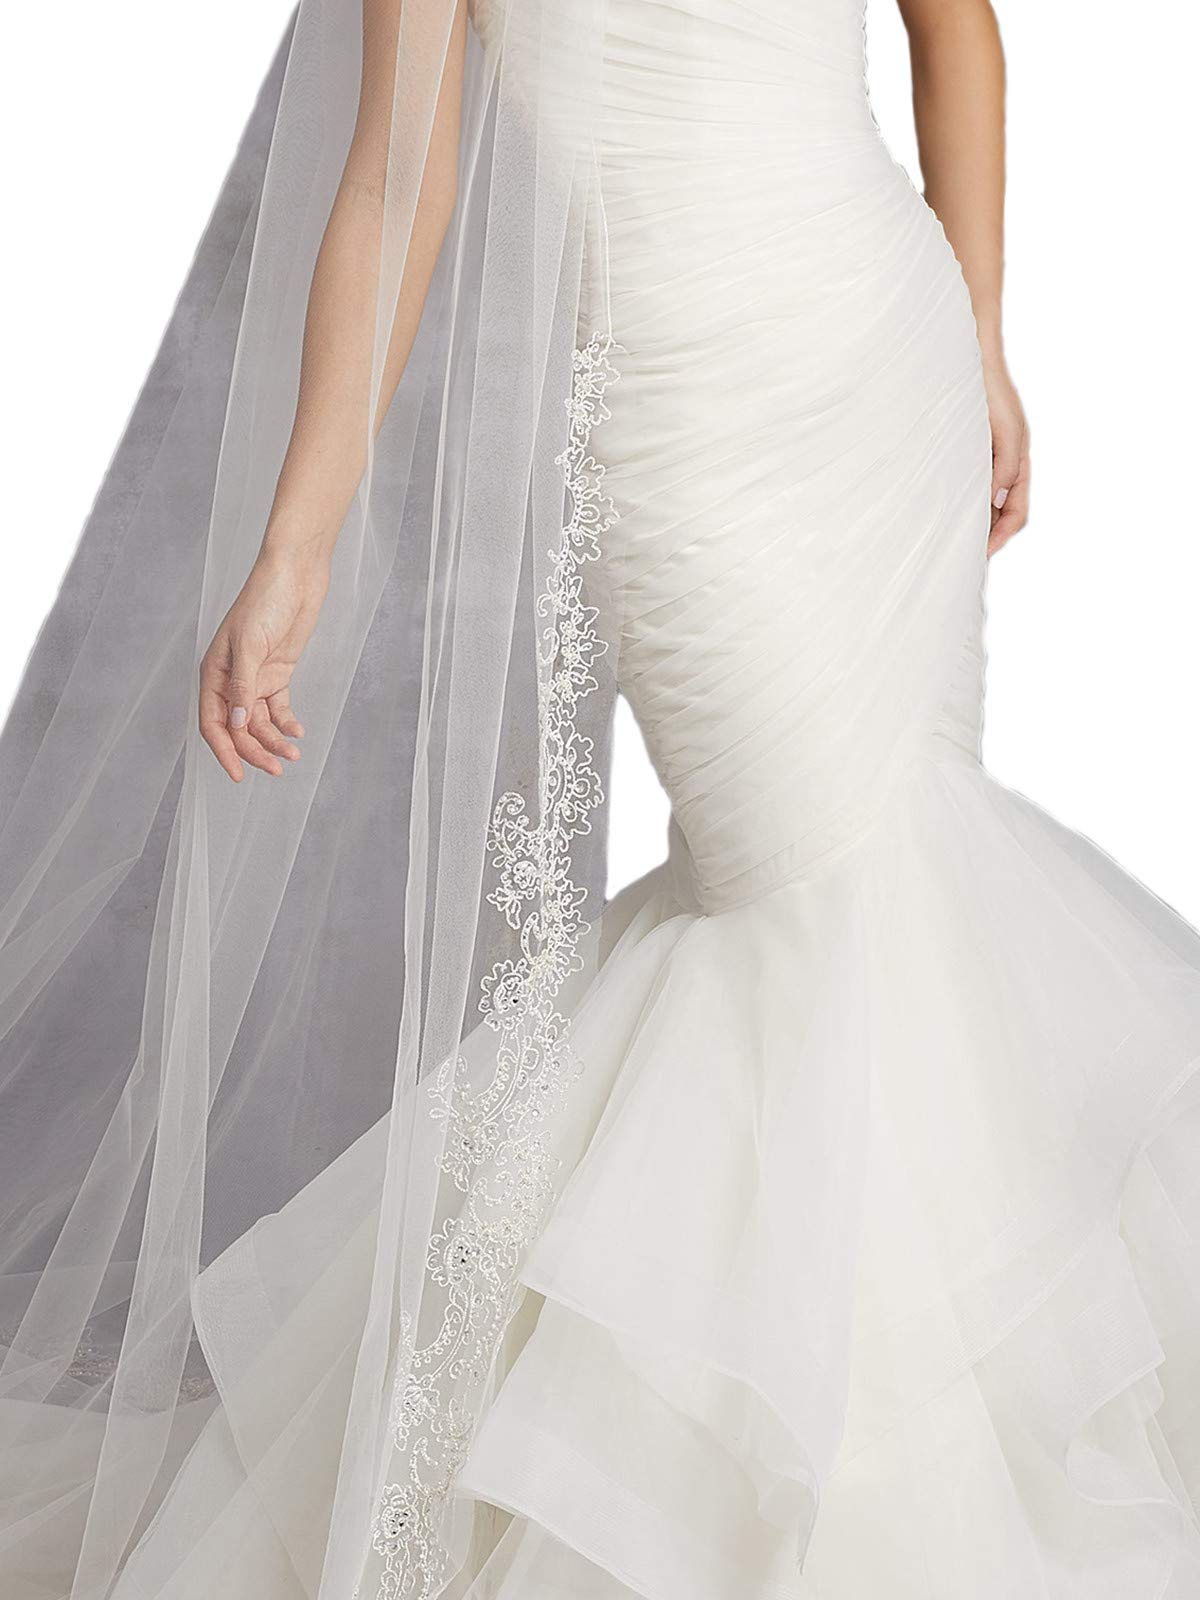 Passat Diamond White Single-Tier 3M Cathedral Veil with Embroidery of Pearls, Sequins, and Rhinestones VL-1016